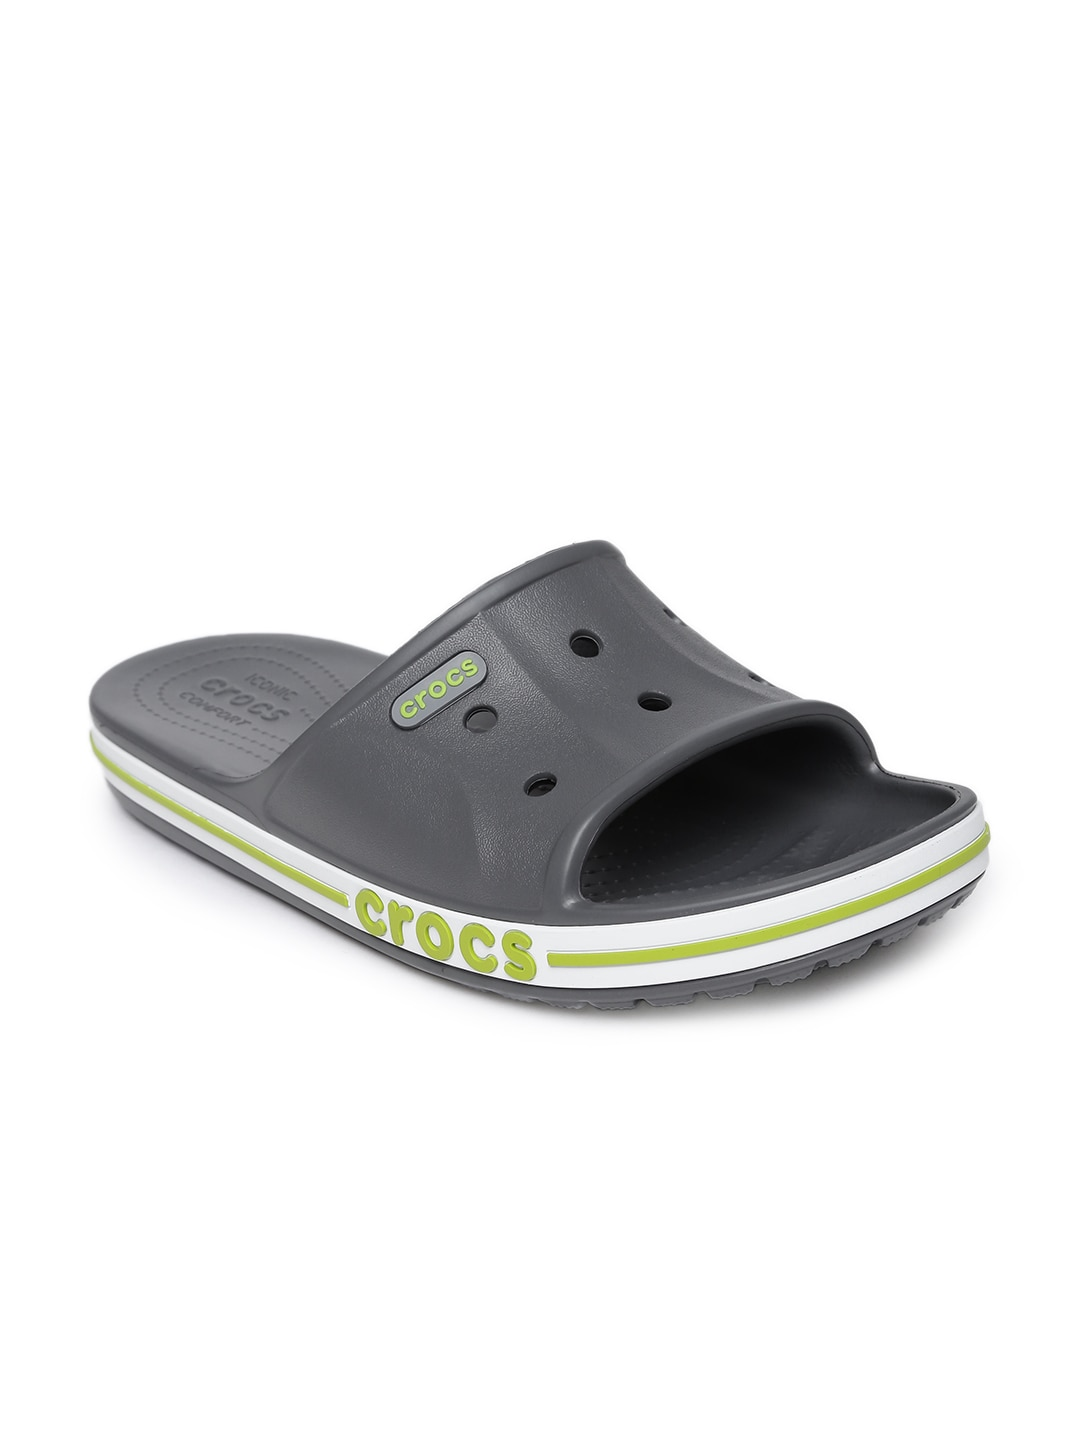 2cc18c9df Crocs Men Footwear - Buy Crocs Shoes and Sandals For Men Online in India